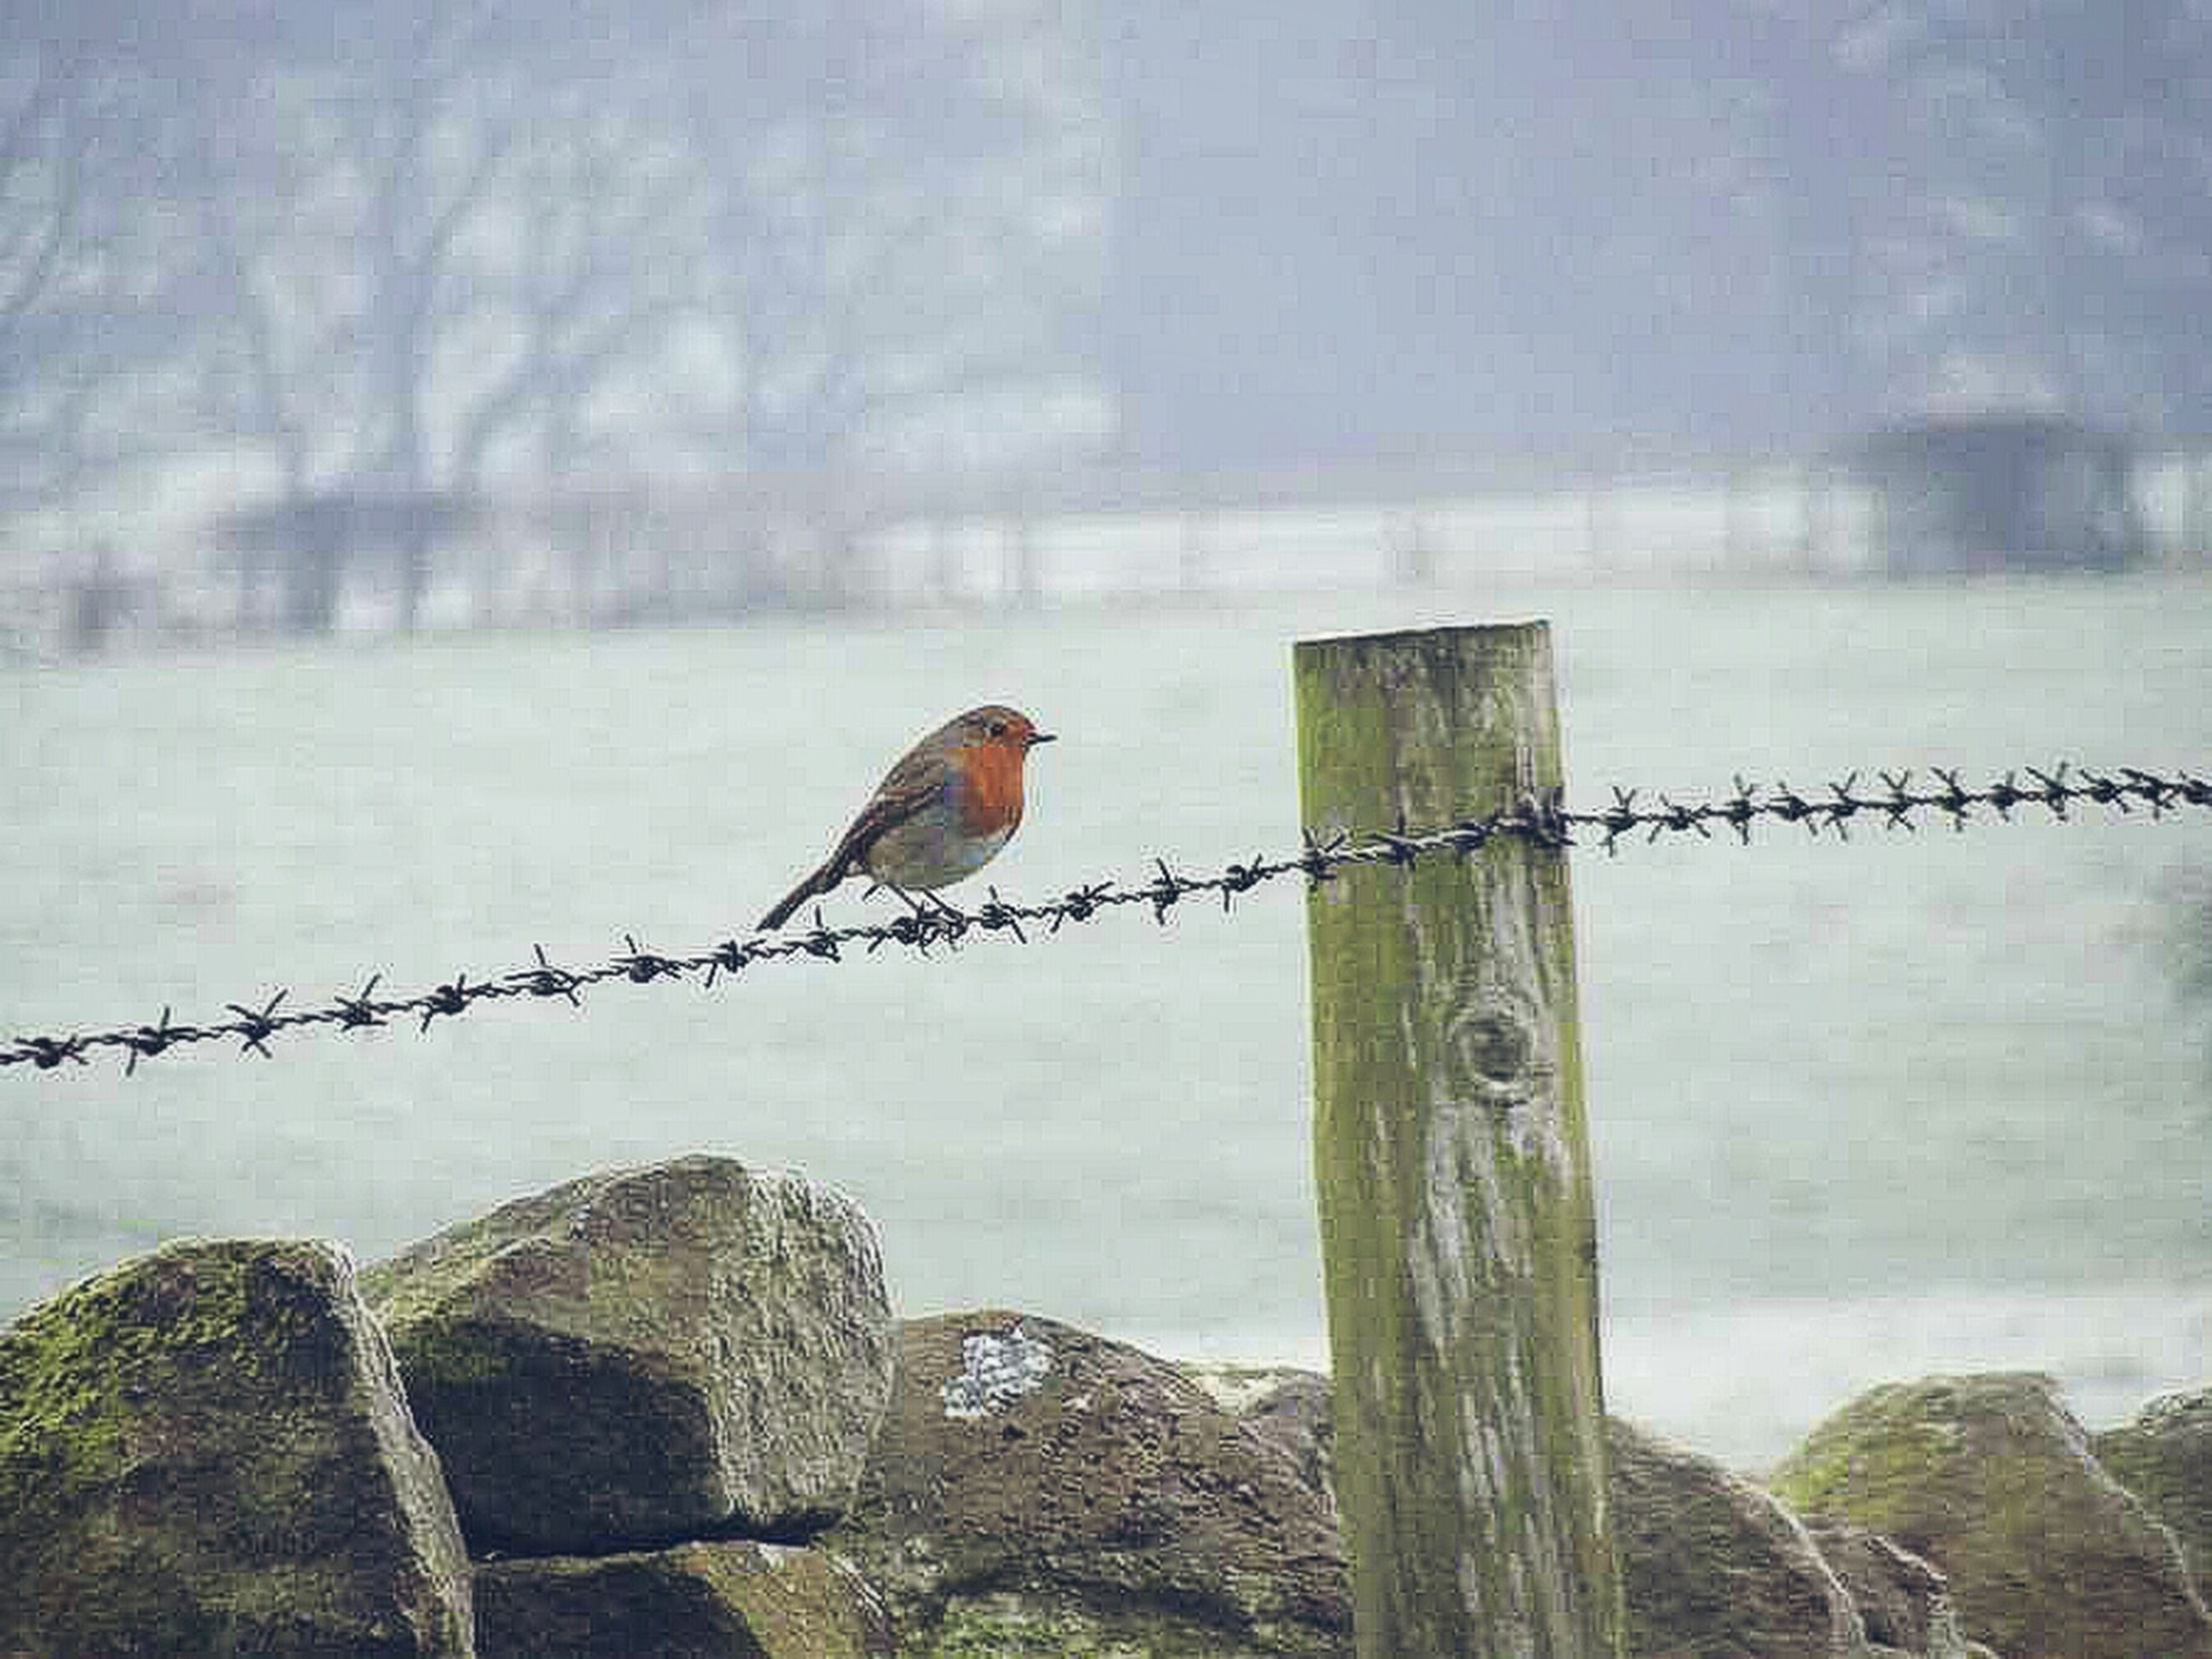 bird, animal themes, animals in the wild, perching, focus on foreground, fence, wildlife, one animal, wood - material, nature, protection, safety, barbed wire, wooden post, tranquility, outdoors, day, close-up, railing, branch